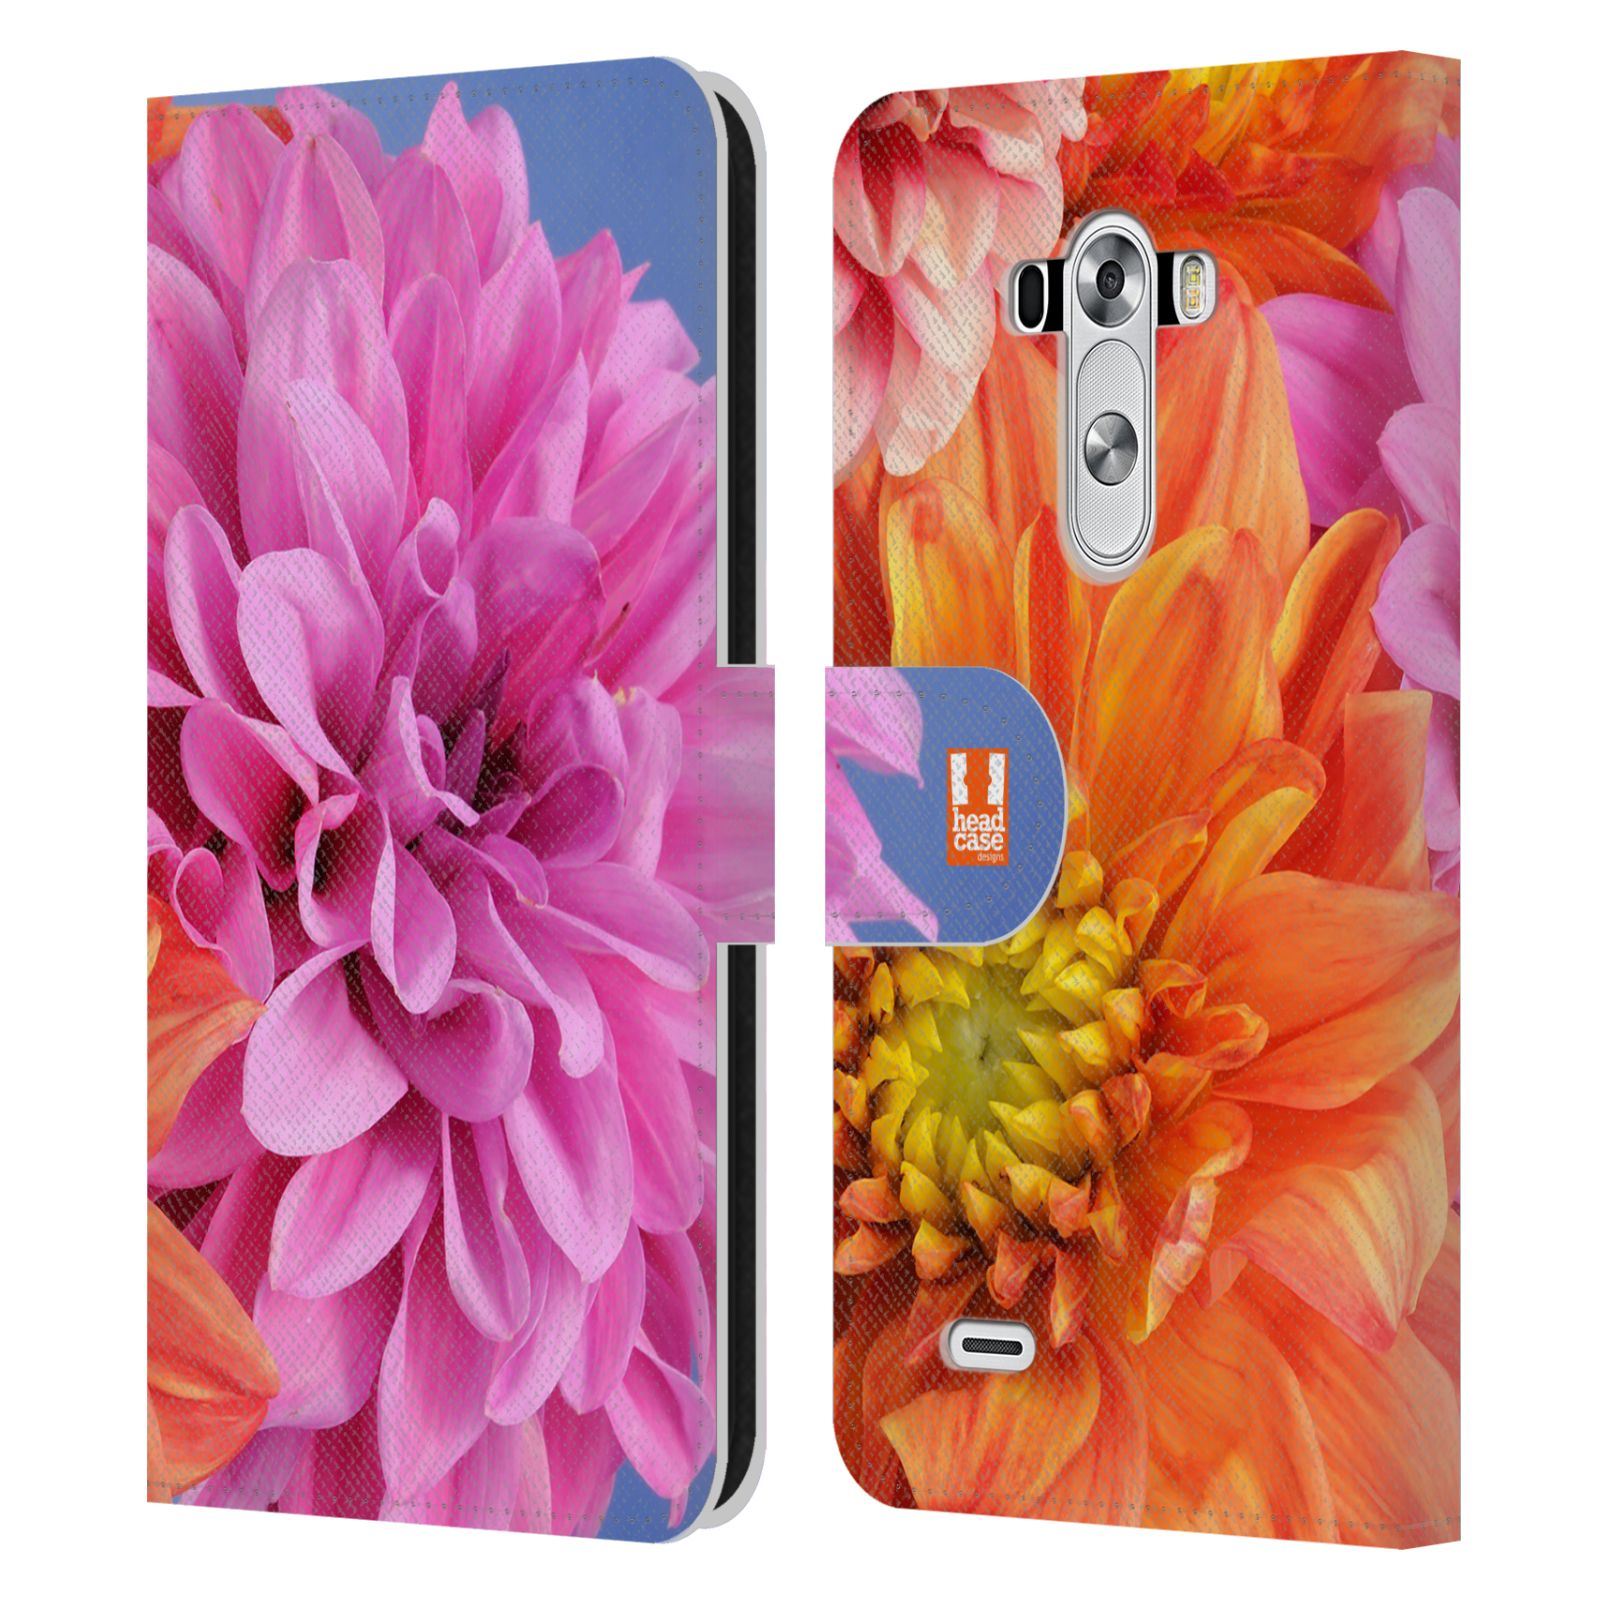 Head case designs flowers leather book wallet case cover - Lg fridge with flower design ...